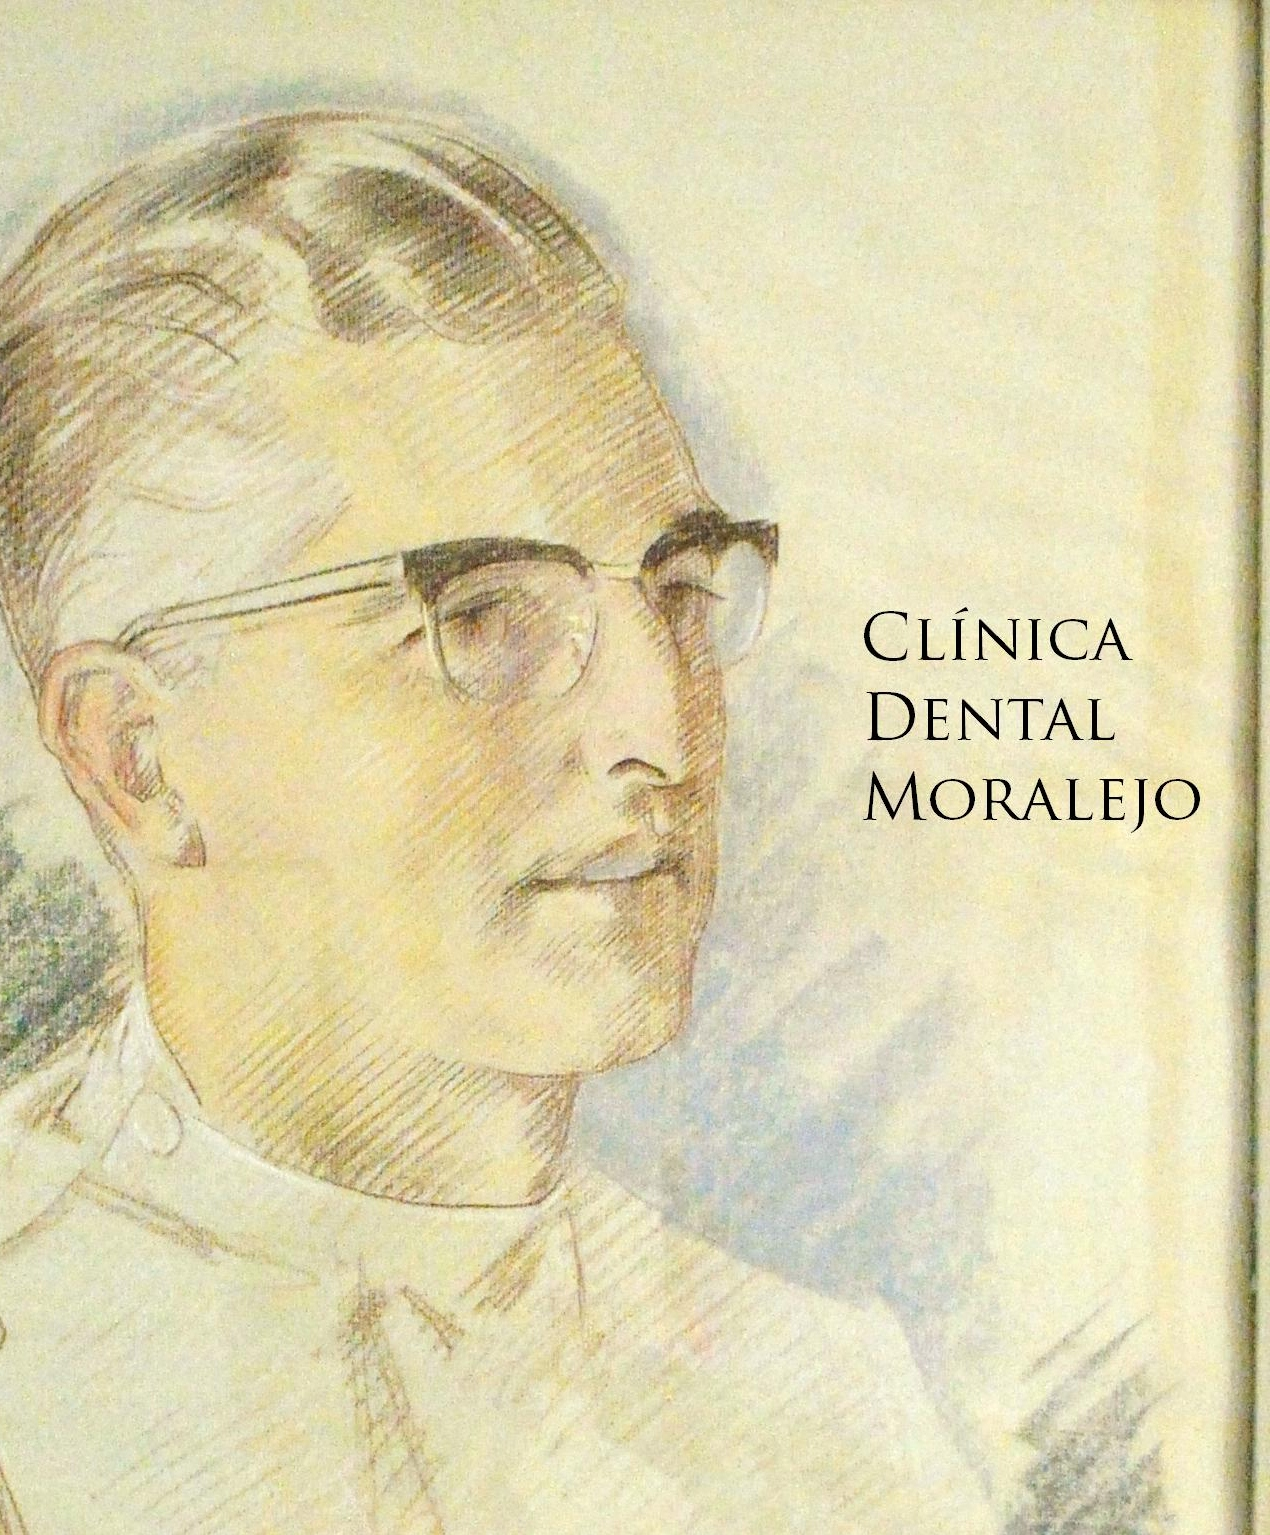 Clinica Dental Moralejo